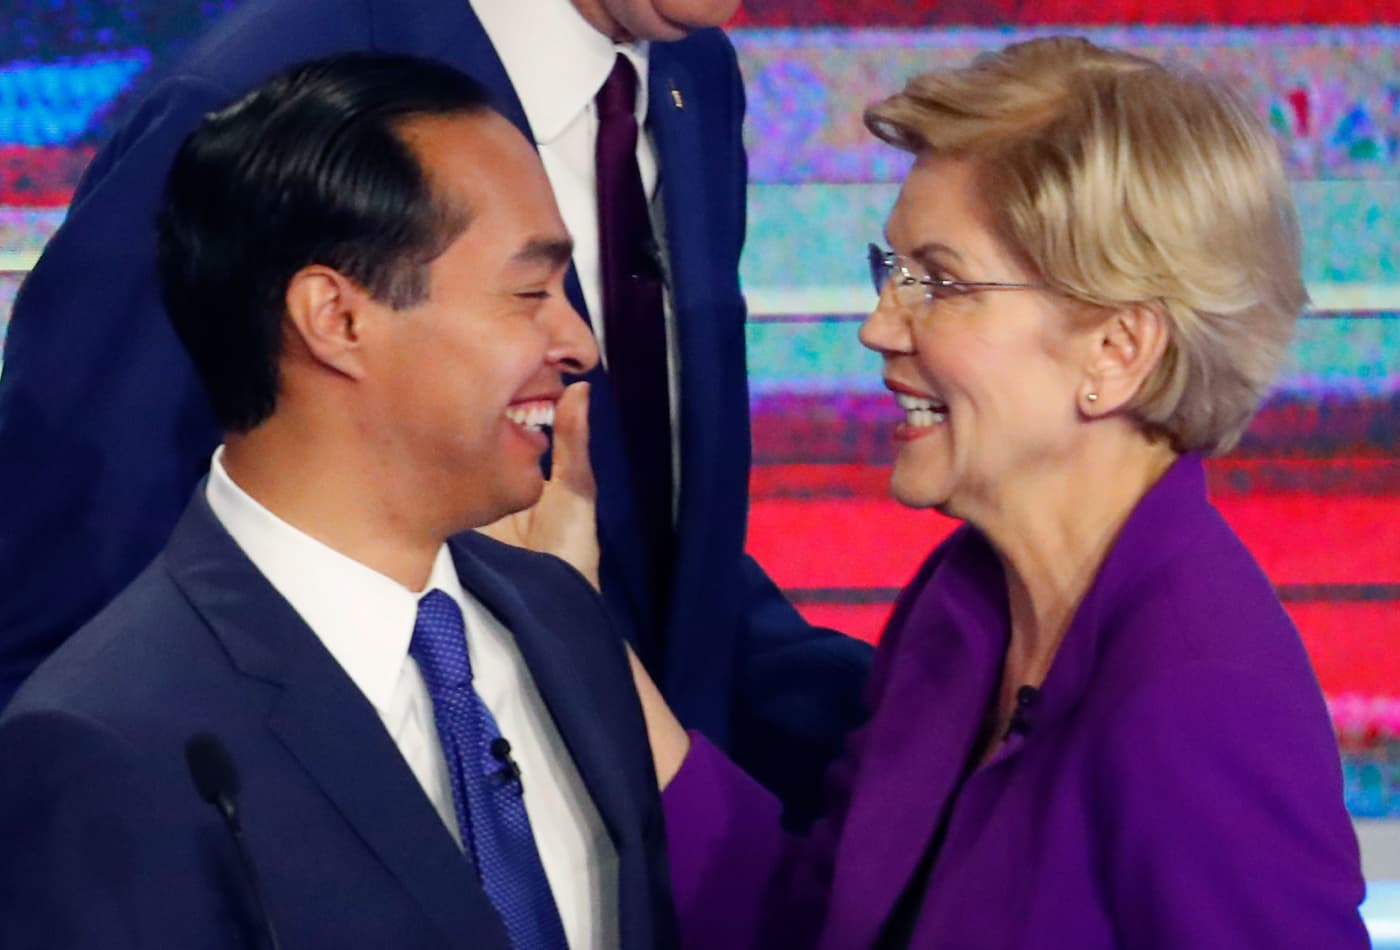 Julian Castro endorses Elizabeth Warren for president days after quitting Democratic primary